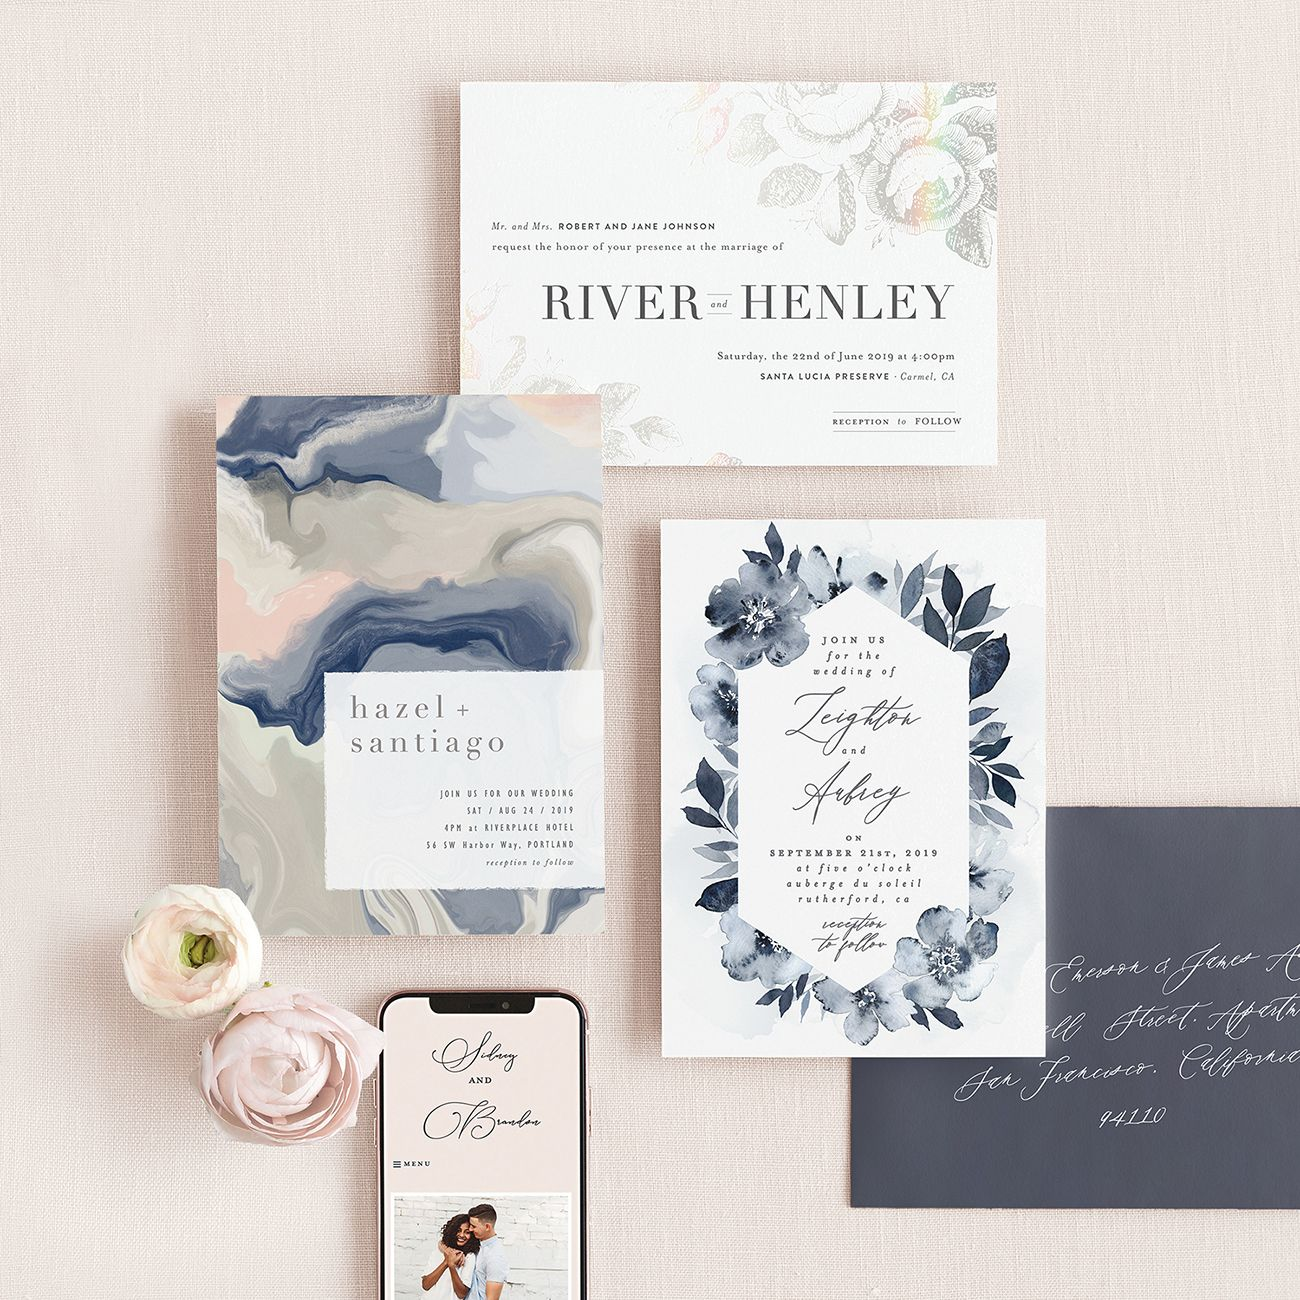 Our Fave Minted Wedding Invitation Suites Green Wedding Shoes Minted Wedding Invitations Wedding Invitation Trends Wedding Invitation Inspiration